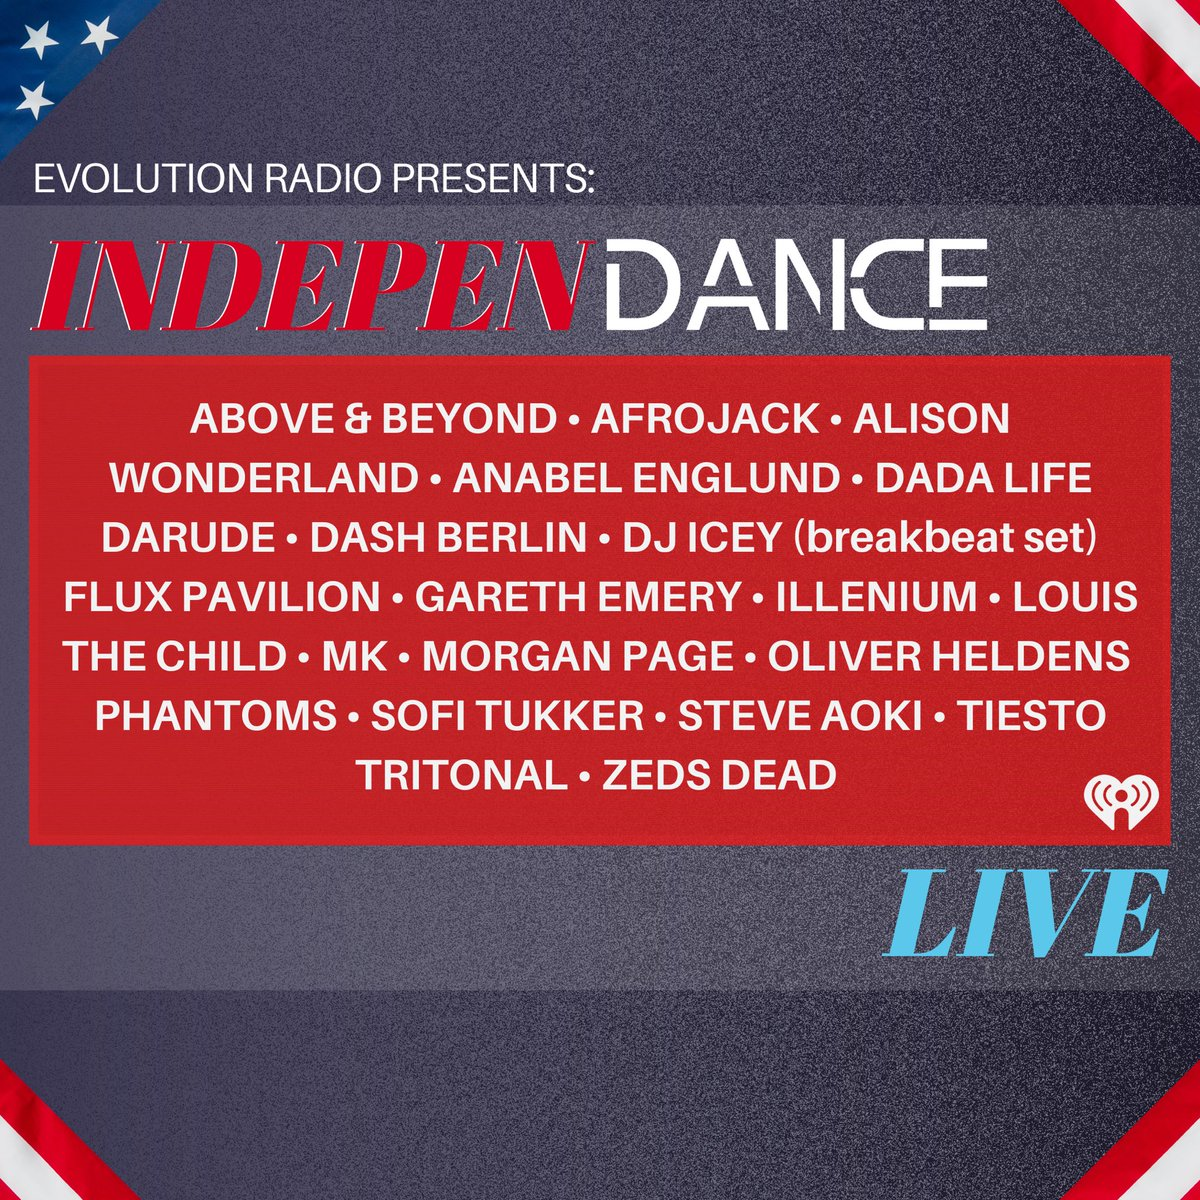 Nowhere to celebrate this wknd? No worries! #IndepenDANCElive kicks off Fri at 3pm ET w TONS of the biggest guest mixes! 🎇 Use us anywhere for ur #4thofJuly wknd soundtrack on the free @iheartradio; just tell ur smart device to play Evolution Radio! 🇺🇸 Evolution.iheart.com/listen